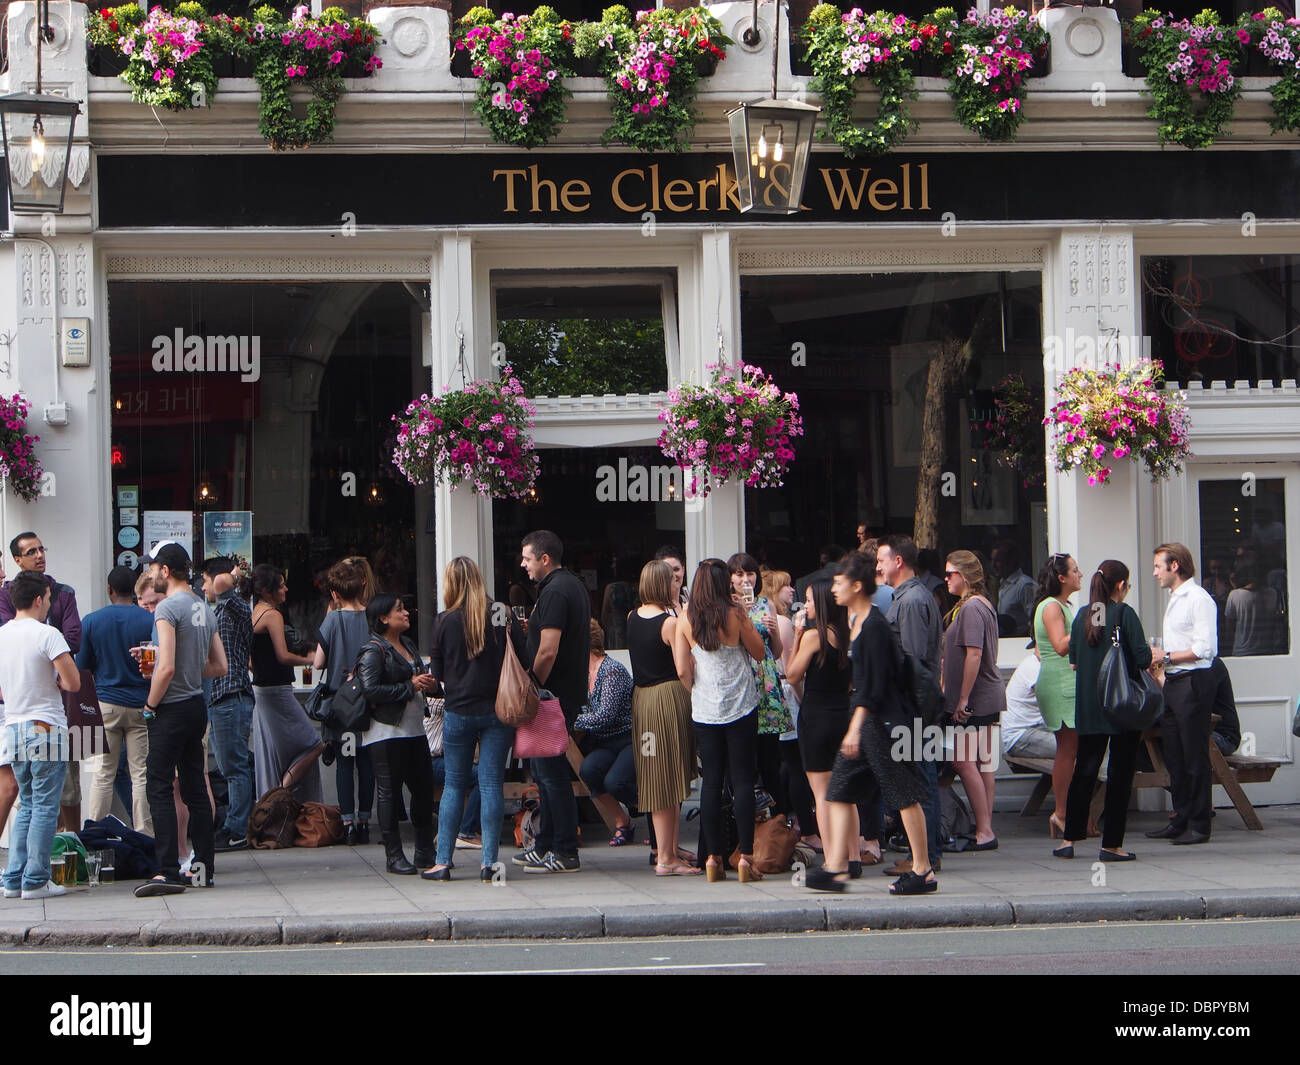 London pub with customers standing outside - Stock Image